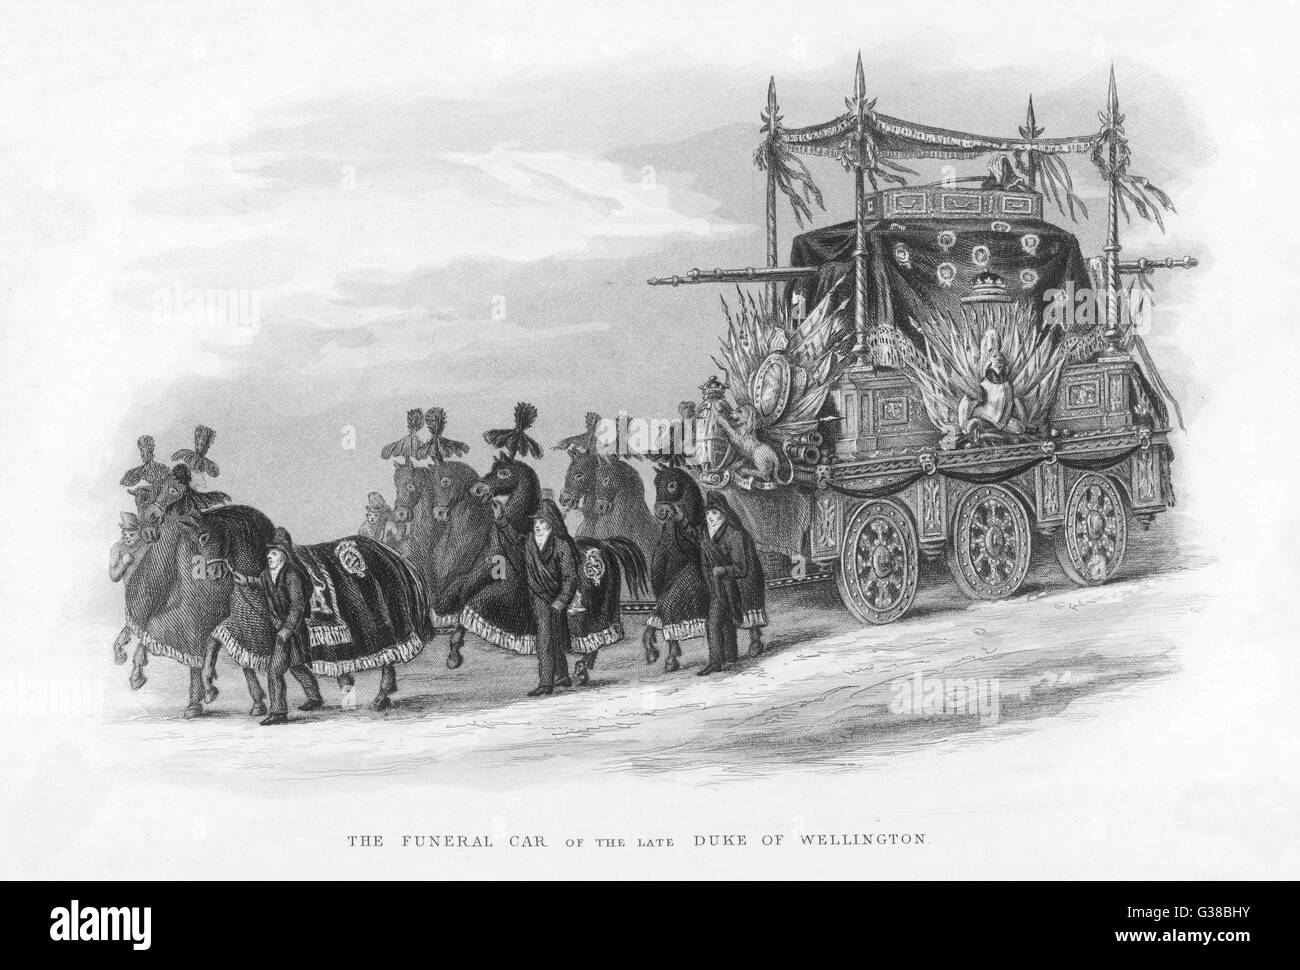 The funeral car which carried the corpse of the Duke of Wellington to its final resting-place in St Paul's cathedral, - Stock Image